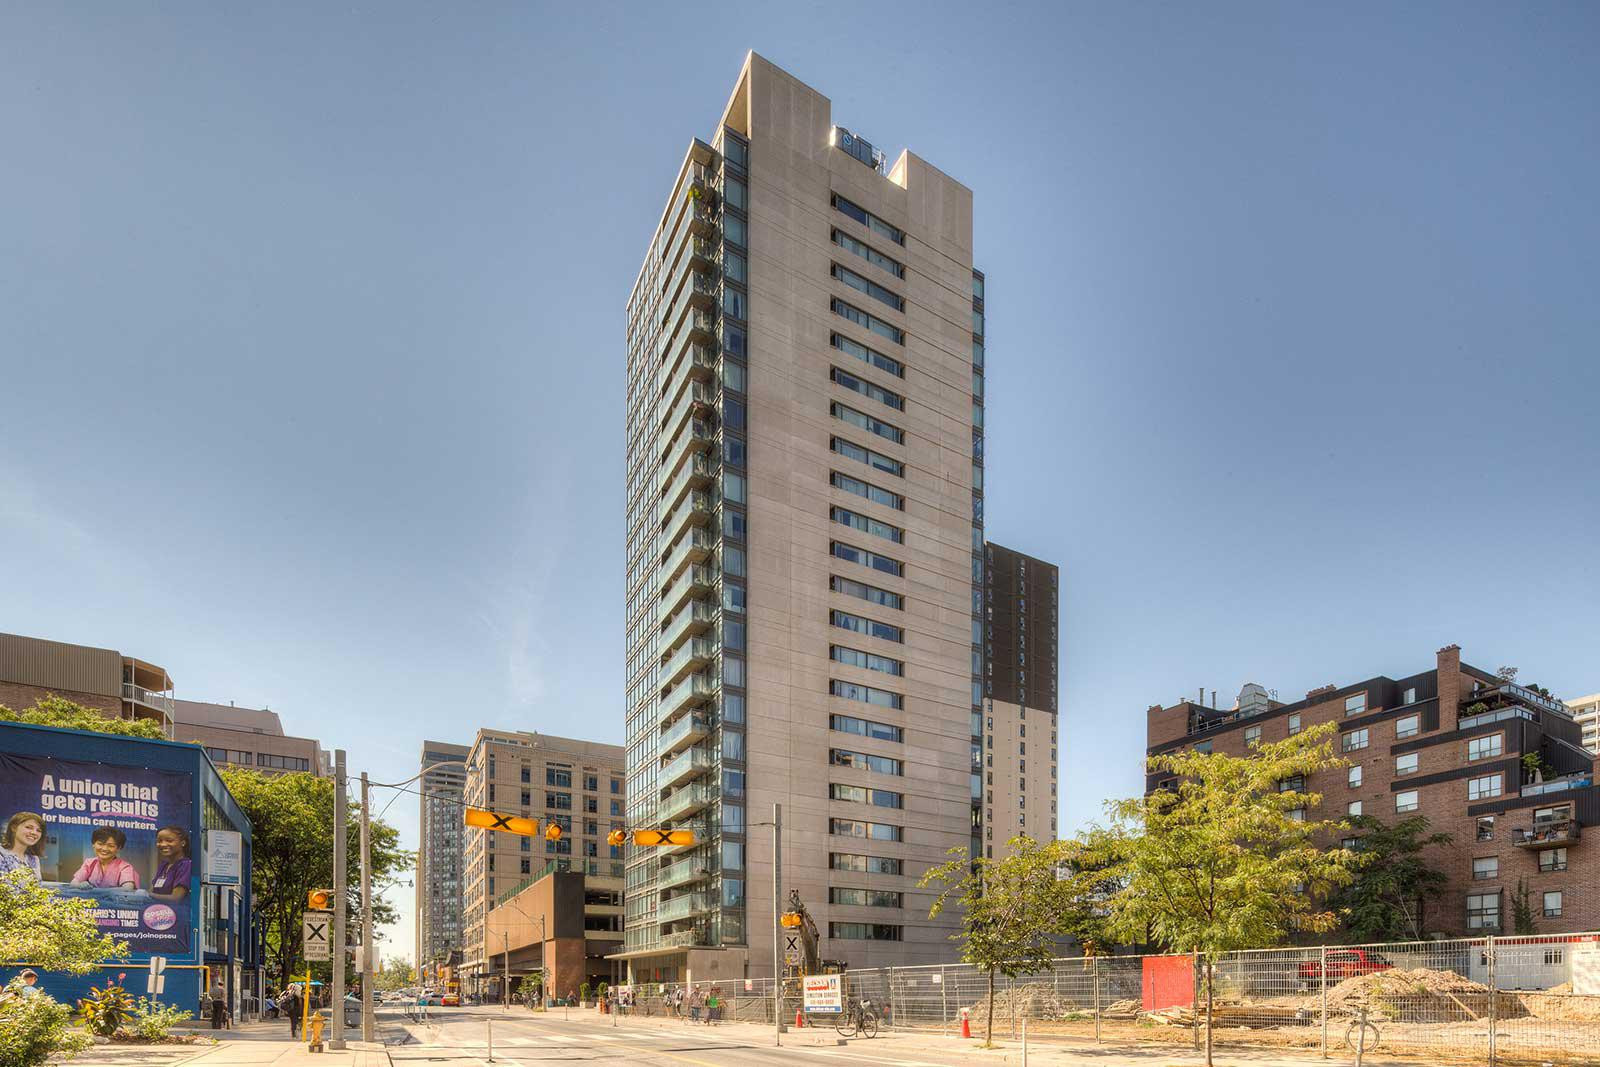 22 Condominiums at 22 Wellesley St E, Toronto 0